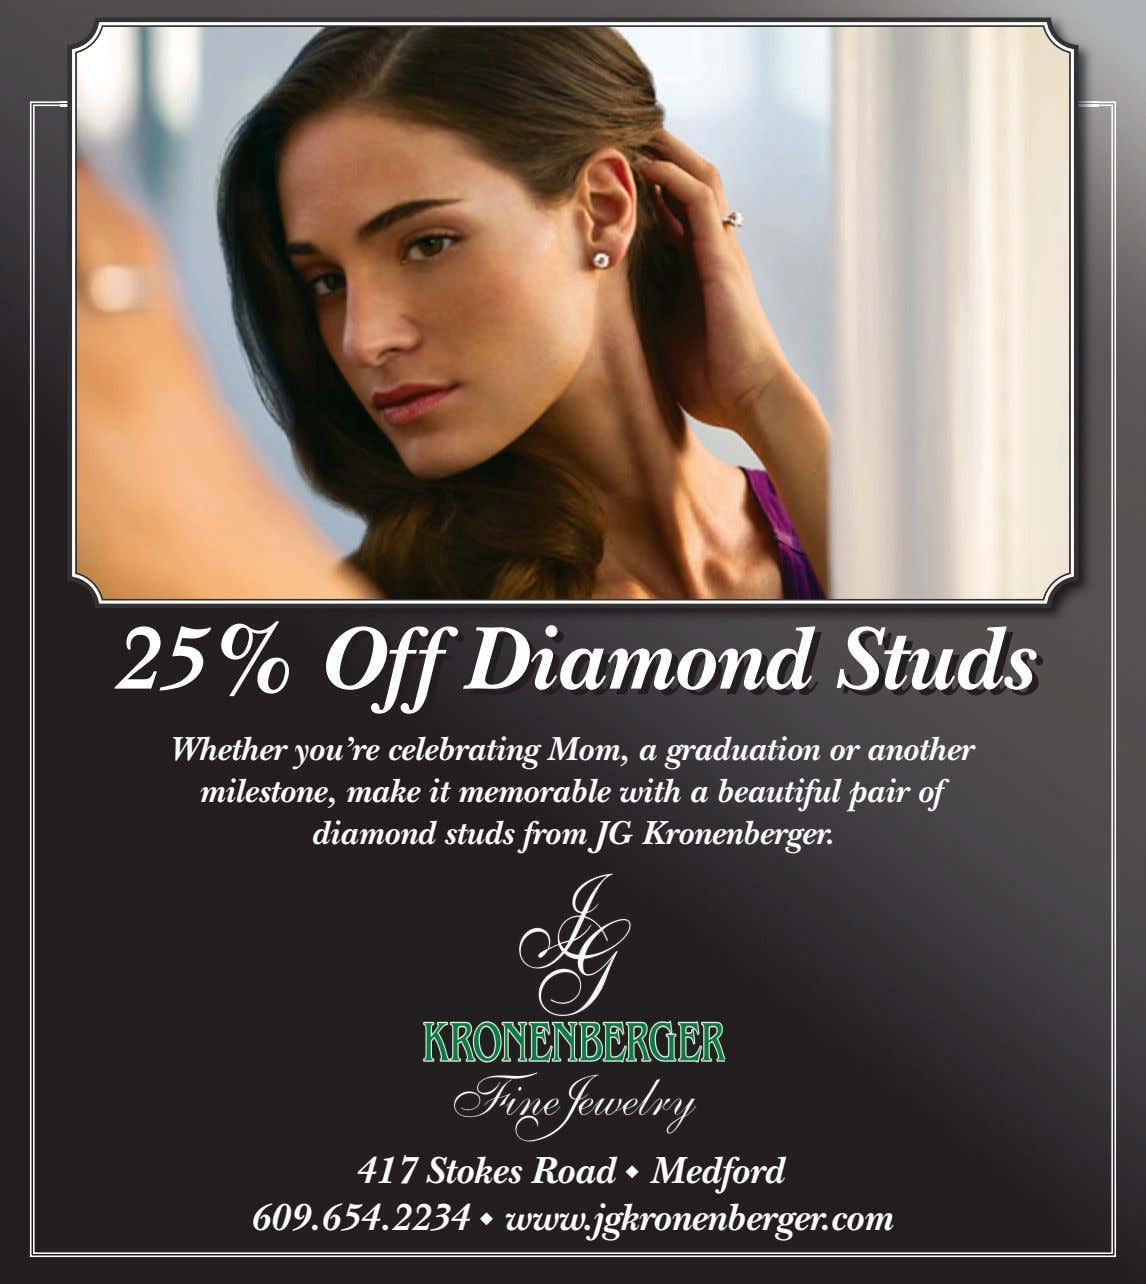 25%25% OffOff DiamondDiamond StudsStuds Whether you're celebrating Mom, a graduation or another milestone, make it